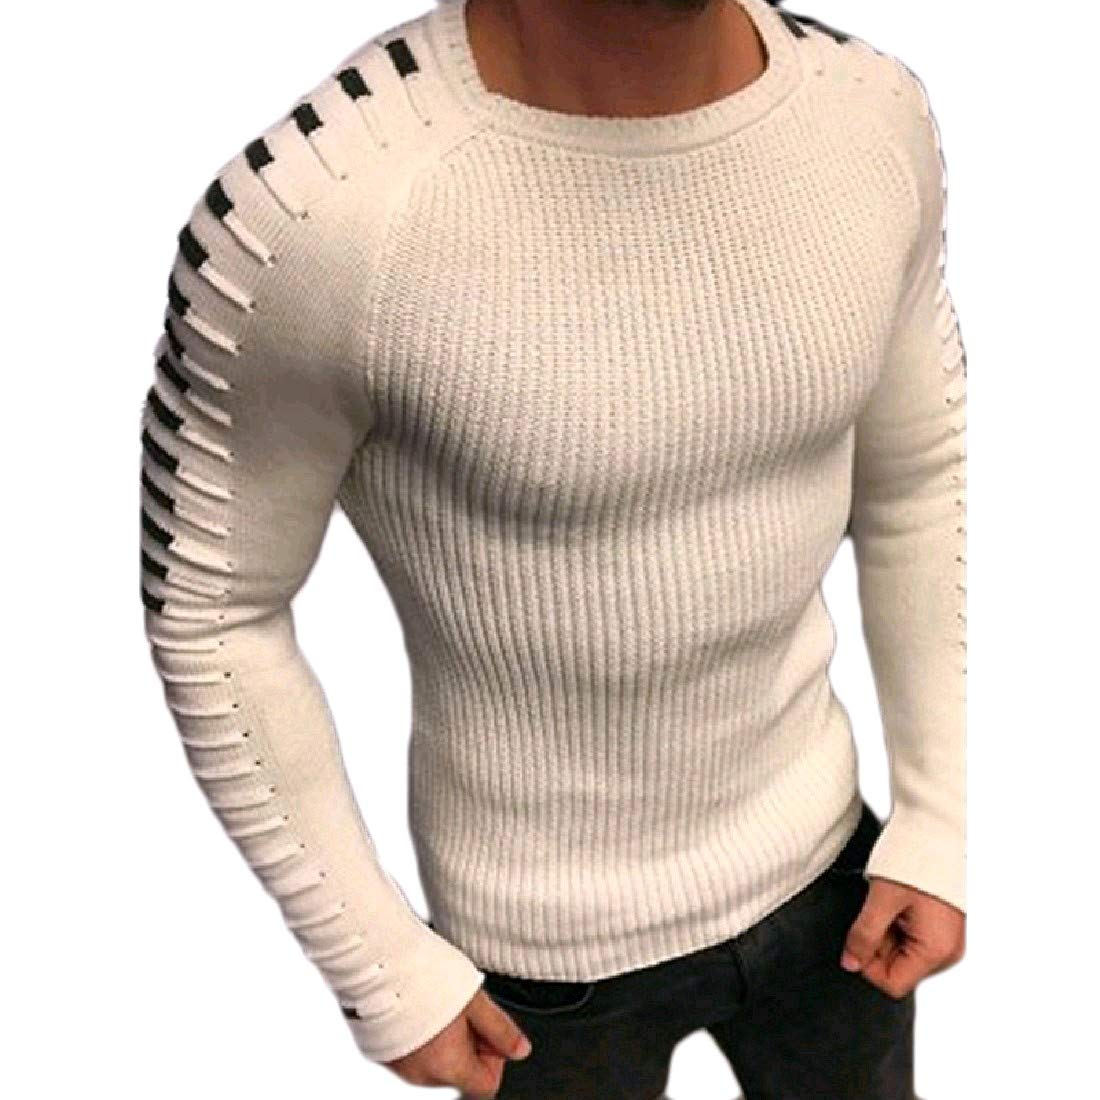 YUNY Mens Silhouette Knitwear Striped Skinny Top Pullover Sweater White XL